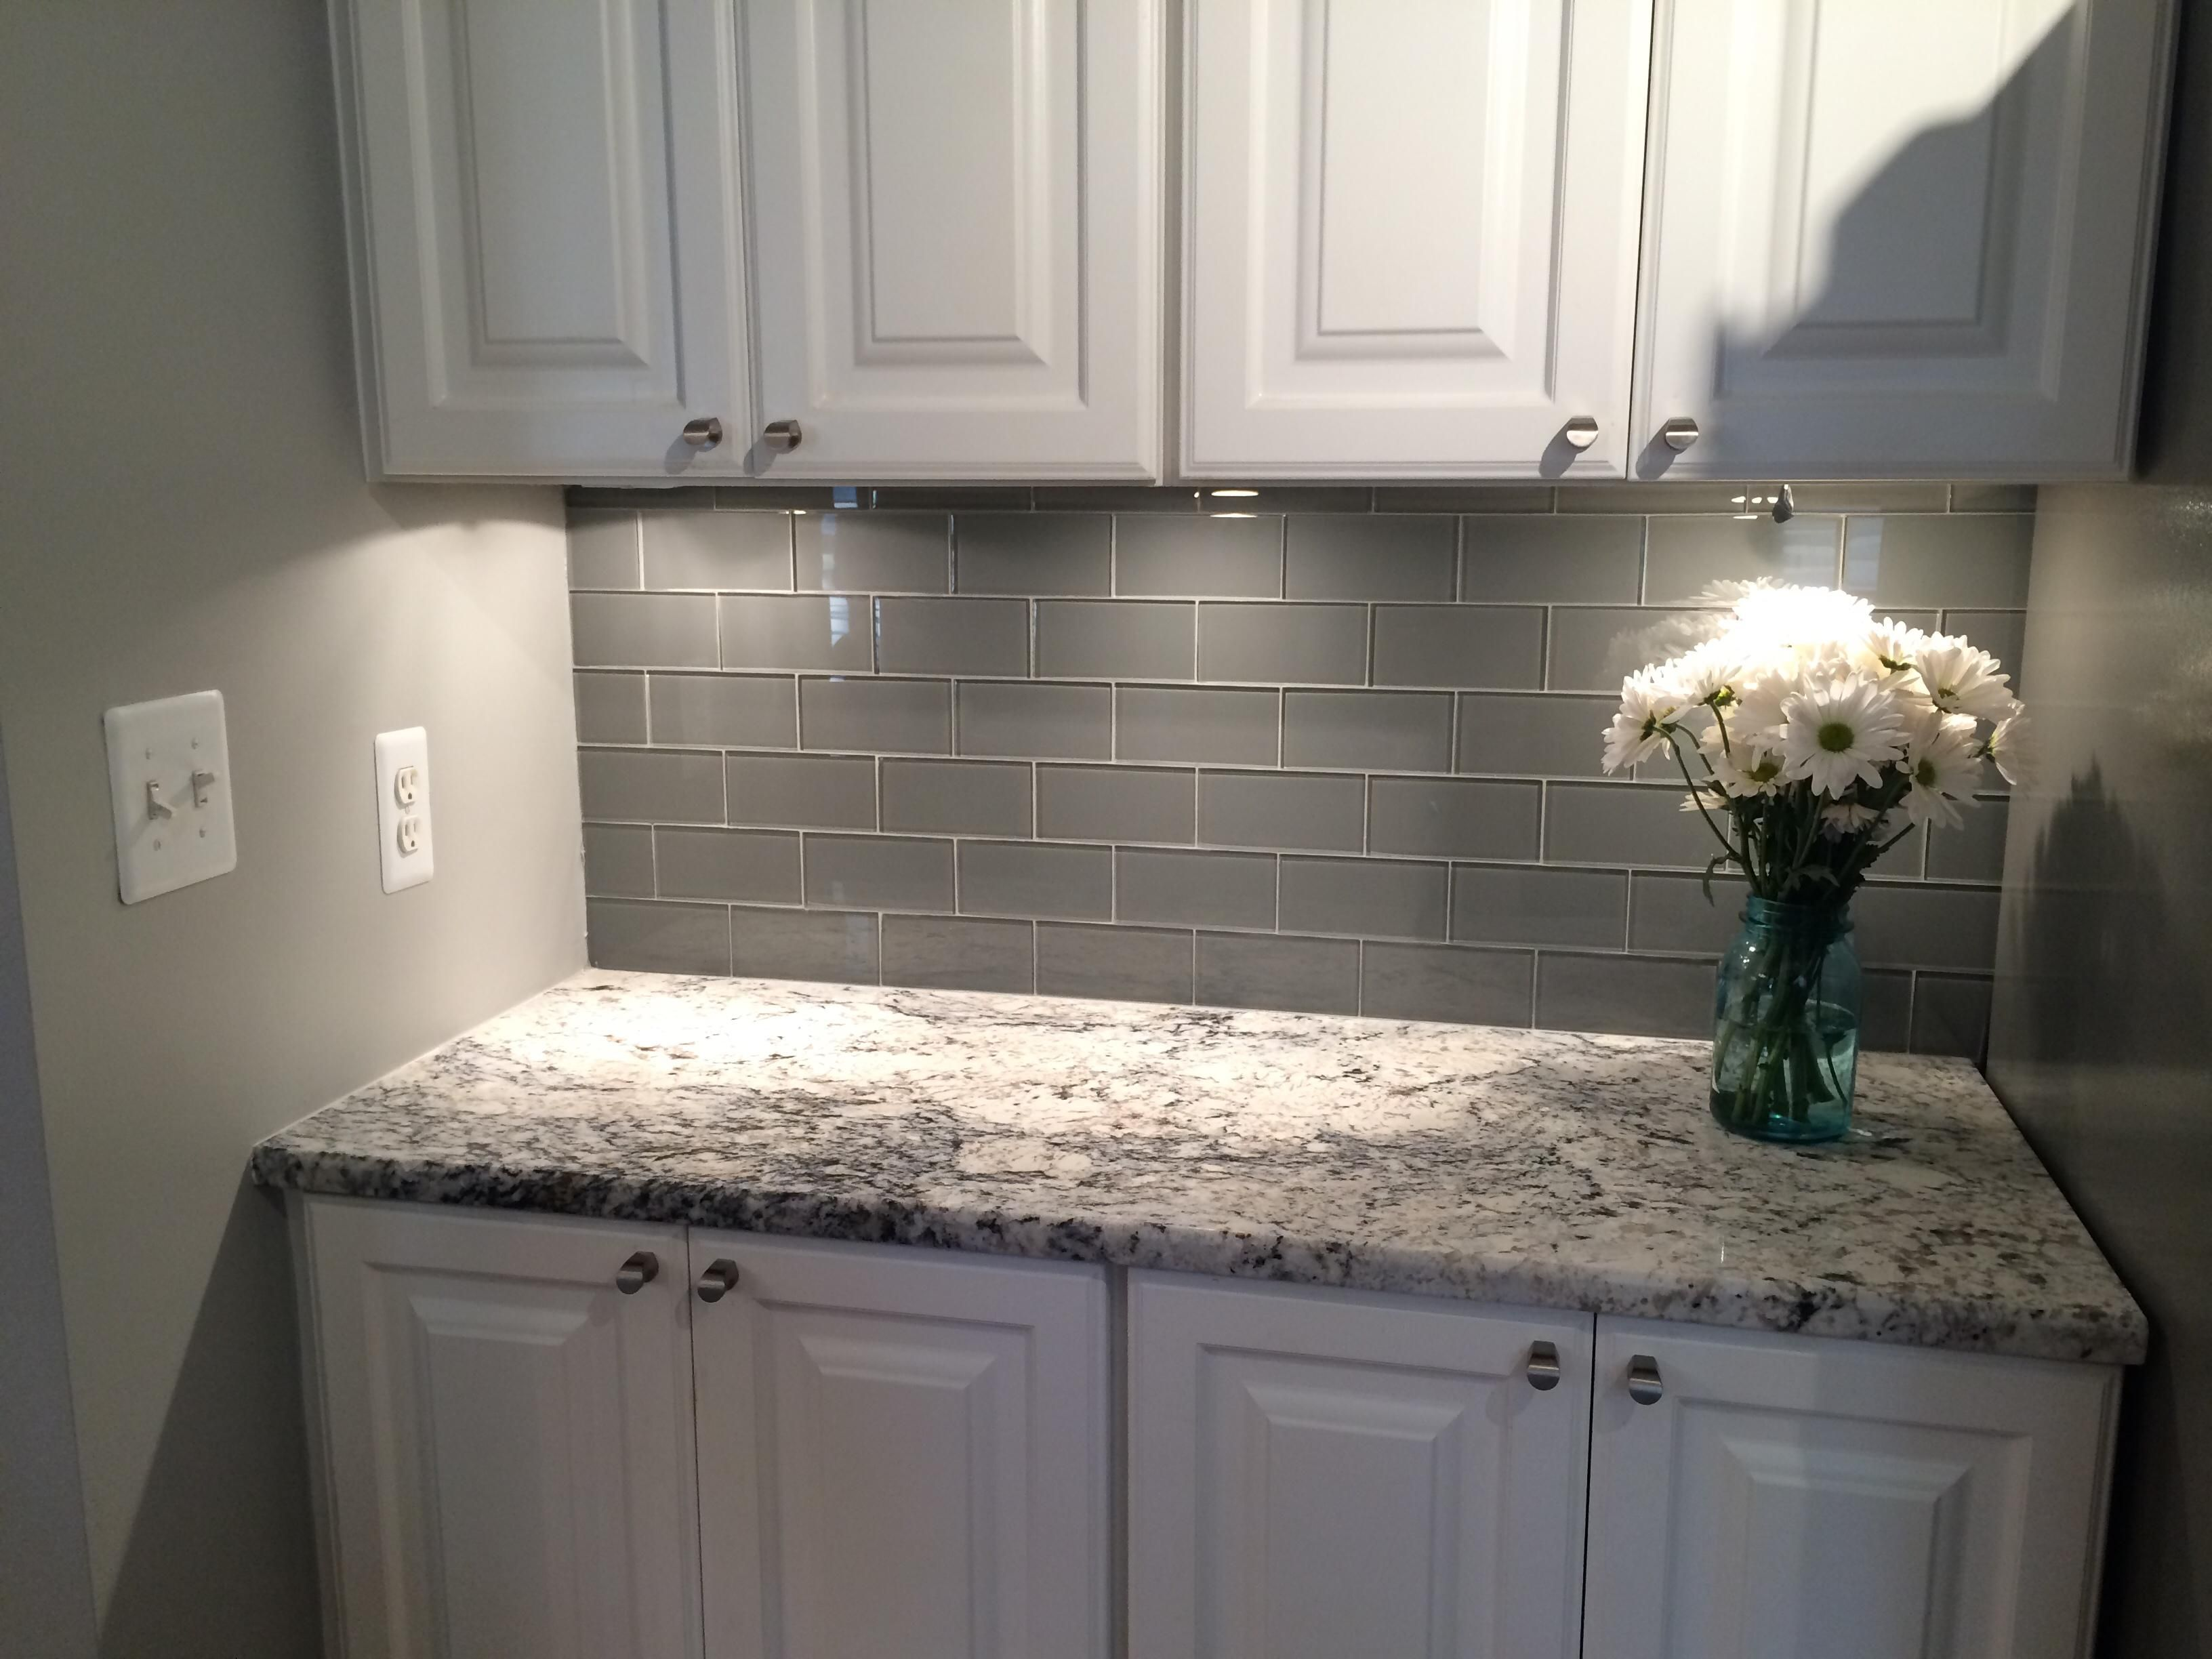 White Tile Backsplash Kitchen #3 - White Subway Tile Backsplash With ...